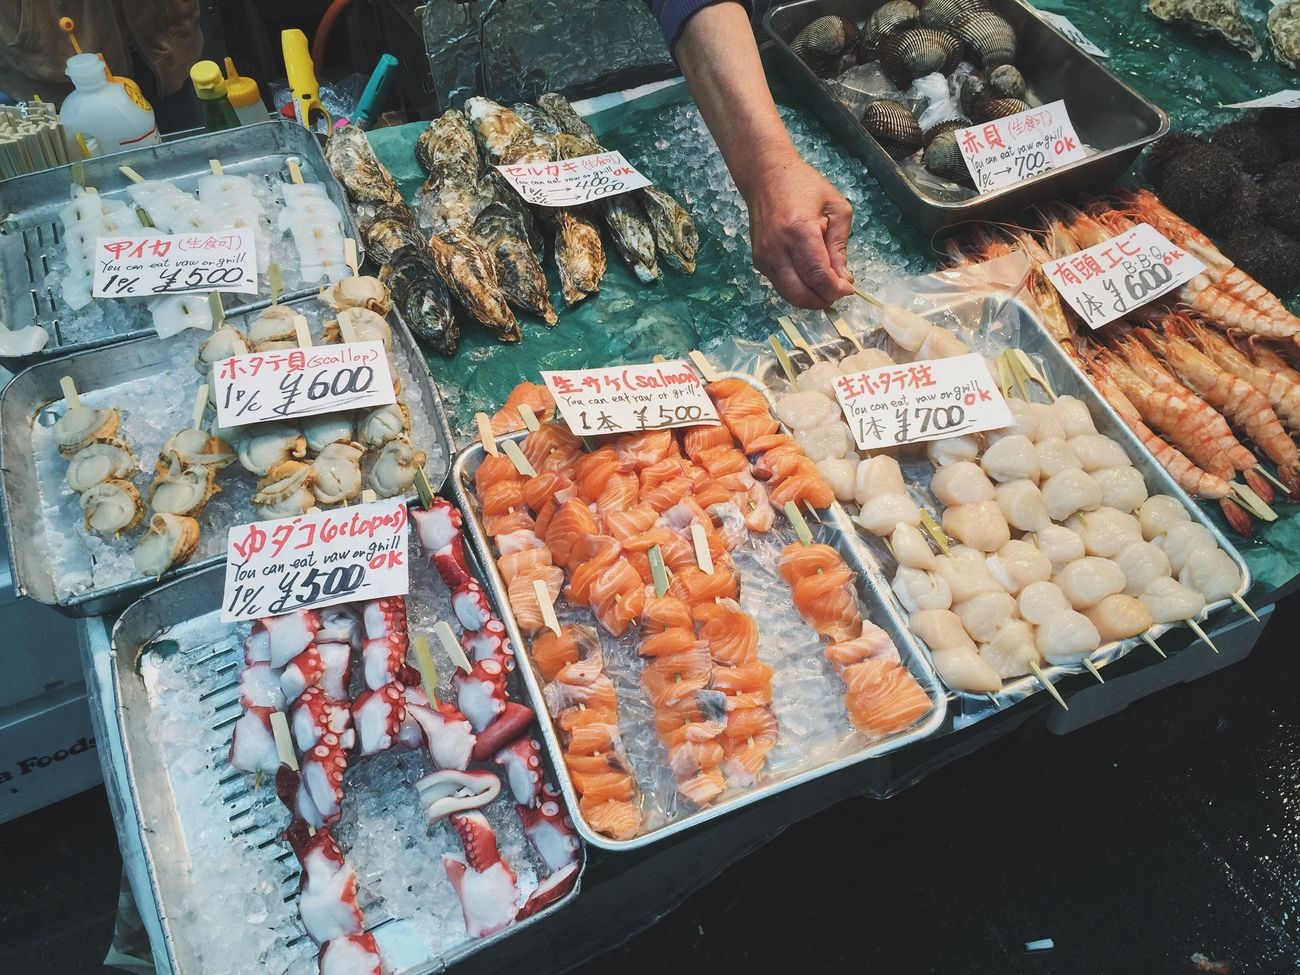 Kuromon Ichiba market Kuromon Ichiba Market IPhoneography Japan Japanese Food Seafood Market Food Market Travel Vscocam